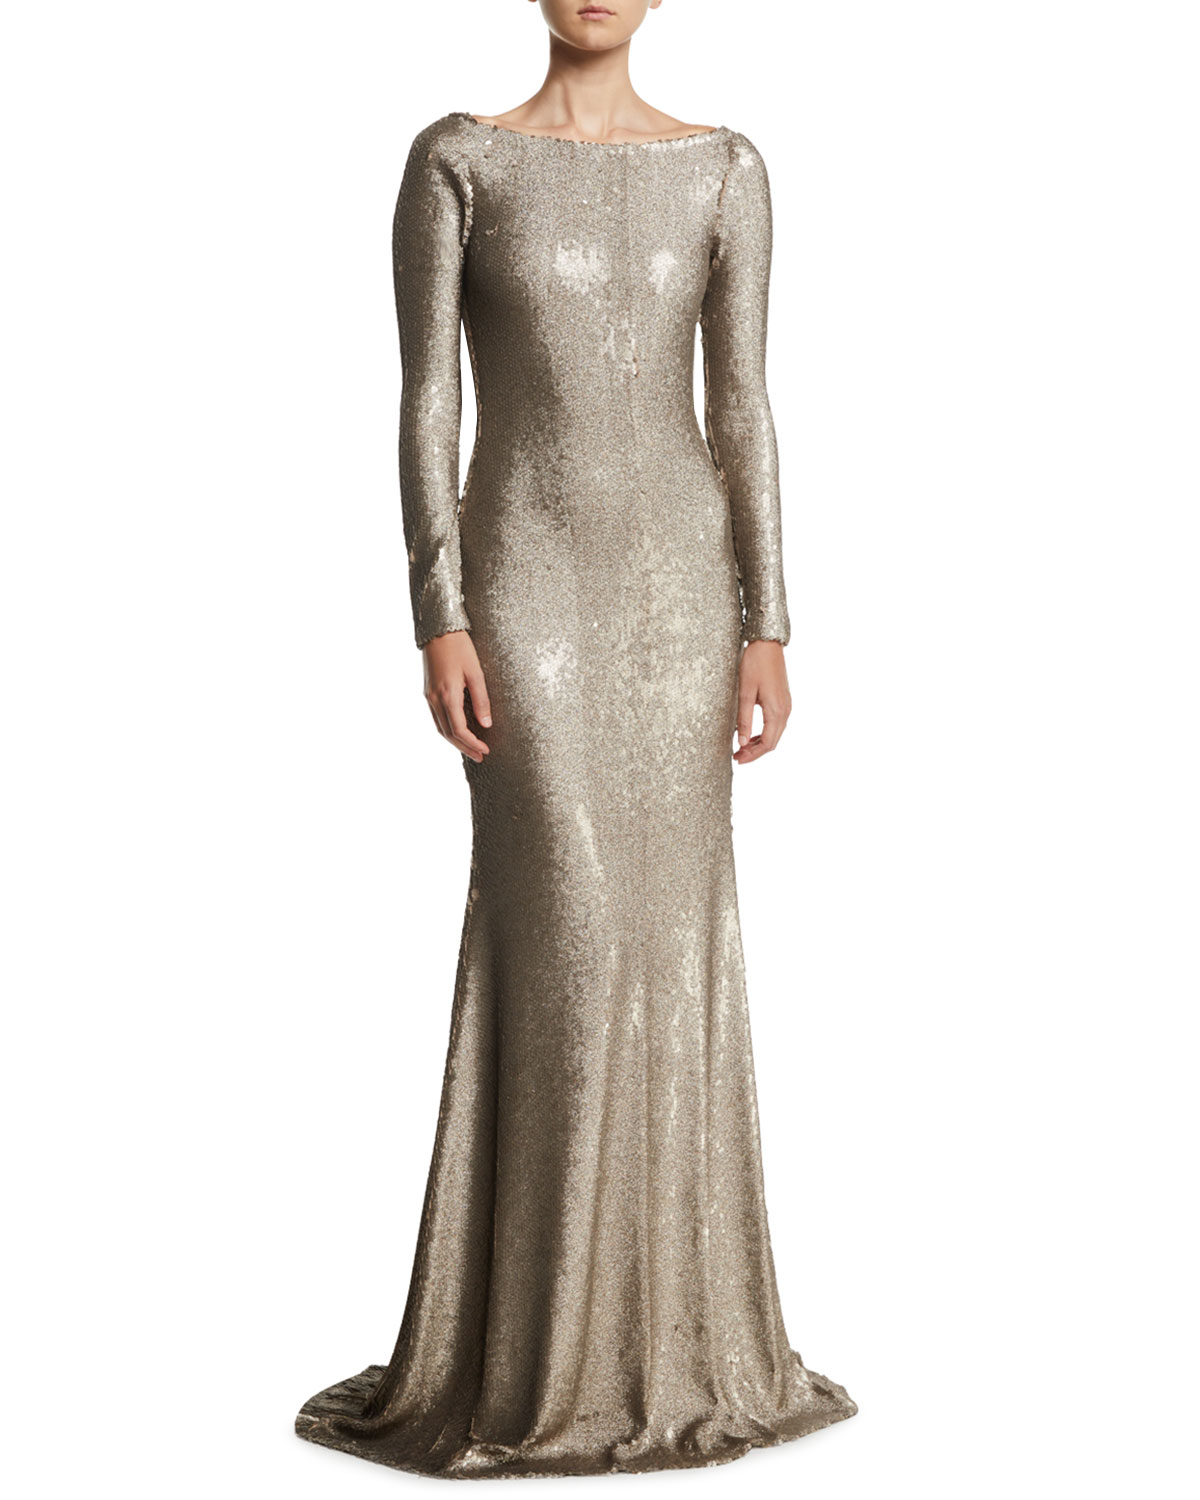 955908f438e5b Naeem Khan Cowl-Back Boat-Neck Long-Sleeve Fitted Sequin Evening Gown